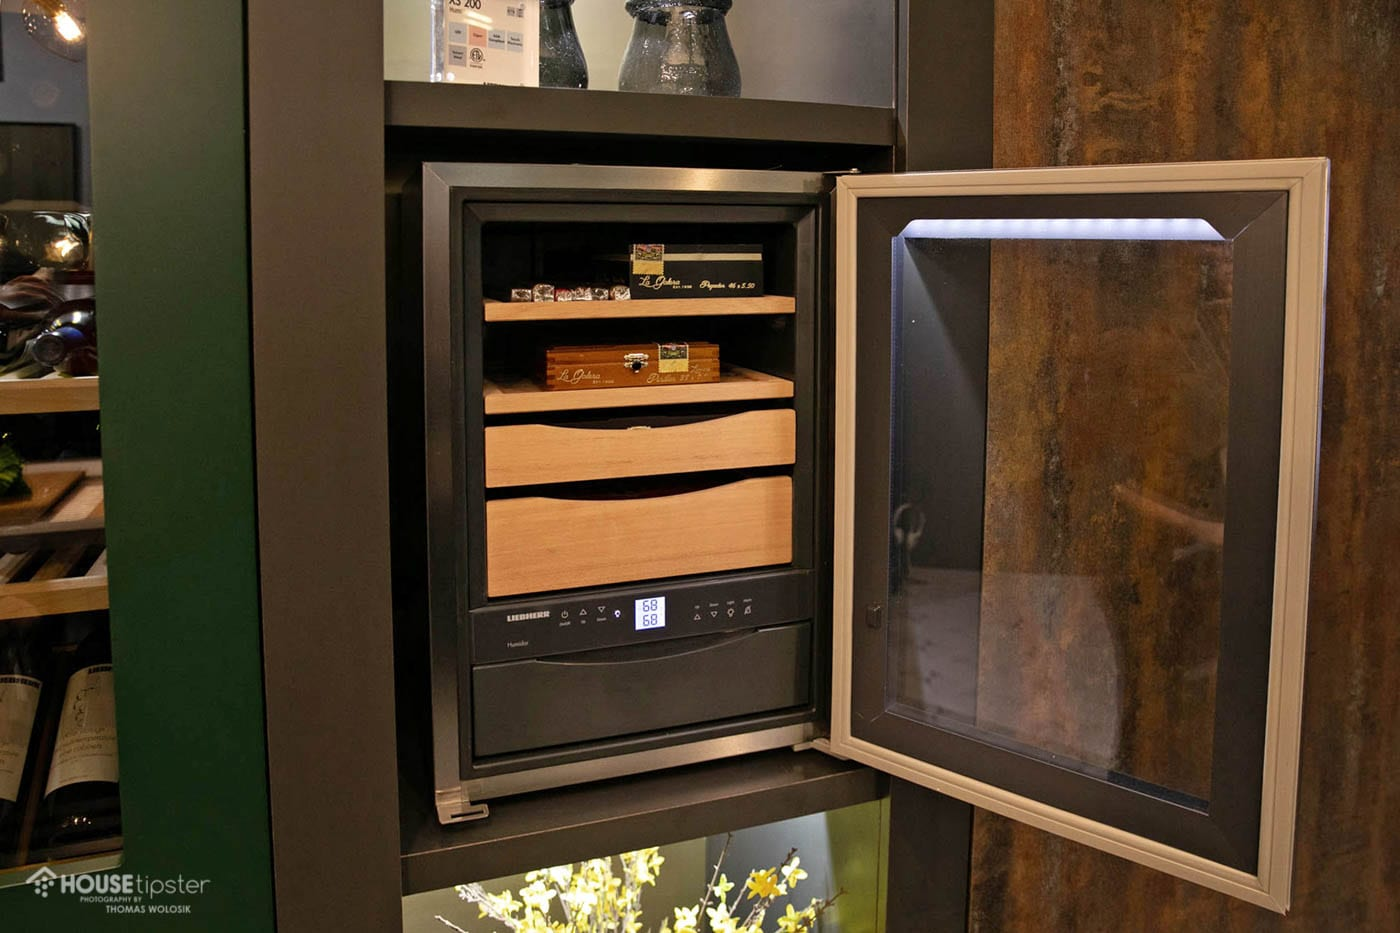 Liebherr Refrigerators Take Center Stage in NYC | House Tipster Industry